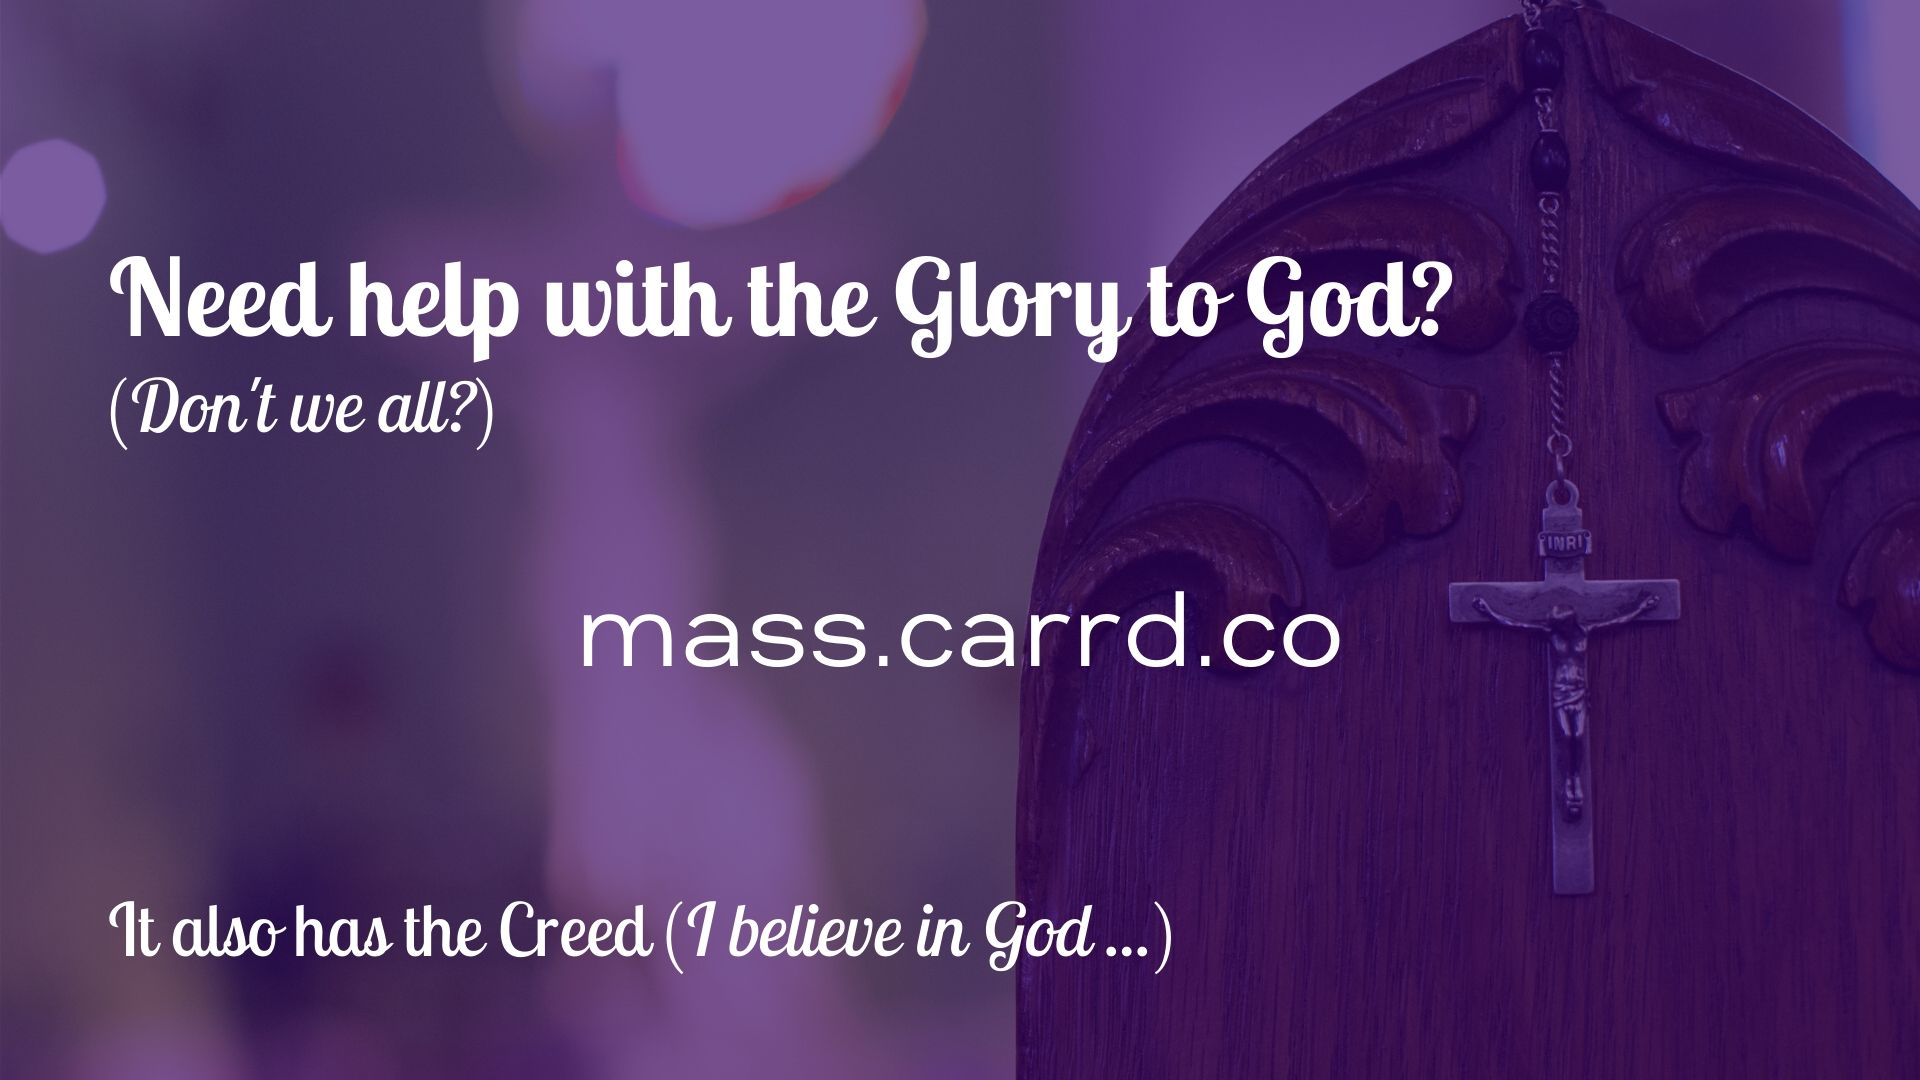 Need help with the Glory to God?